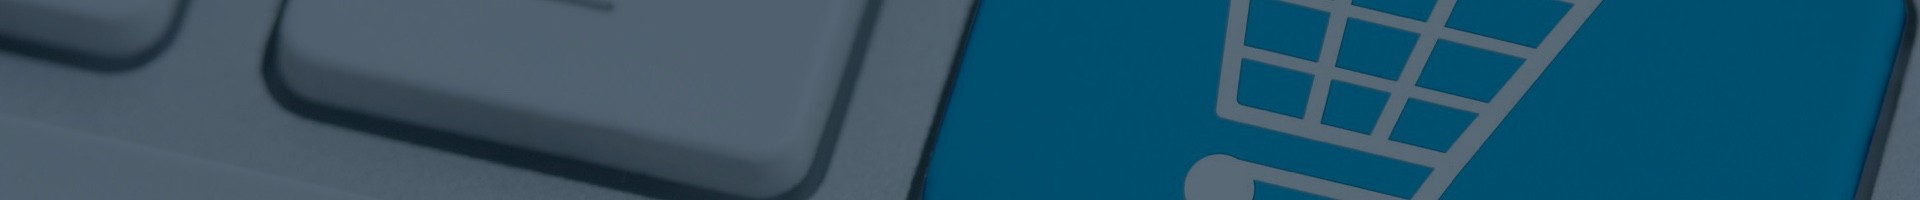 banner orce